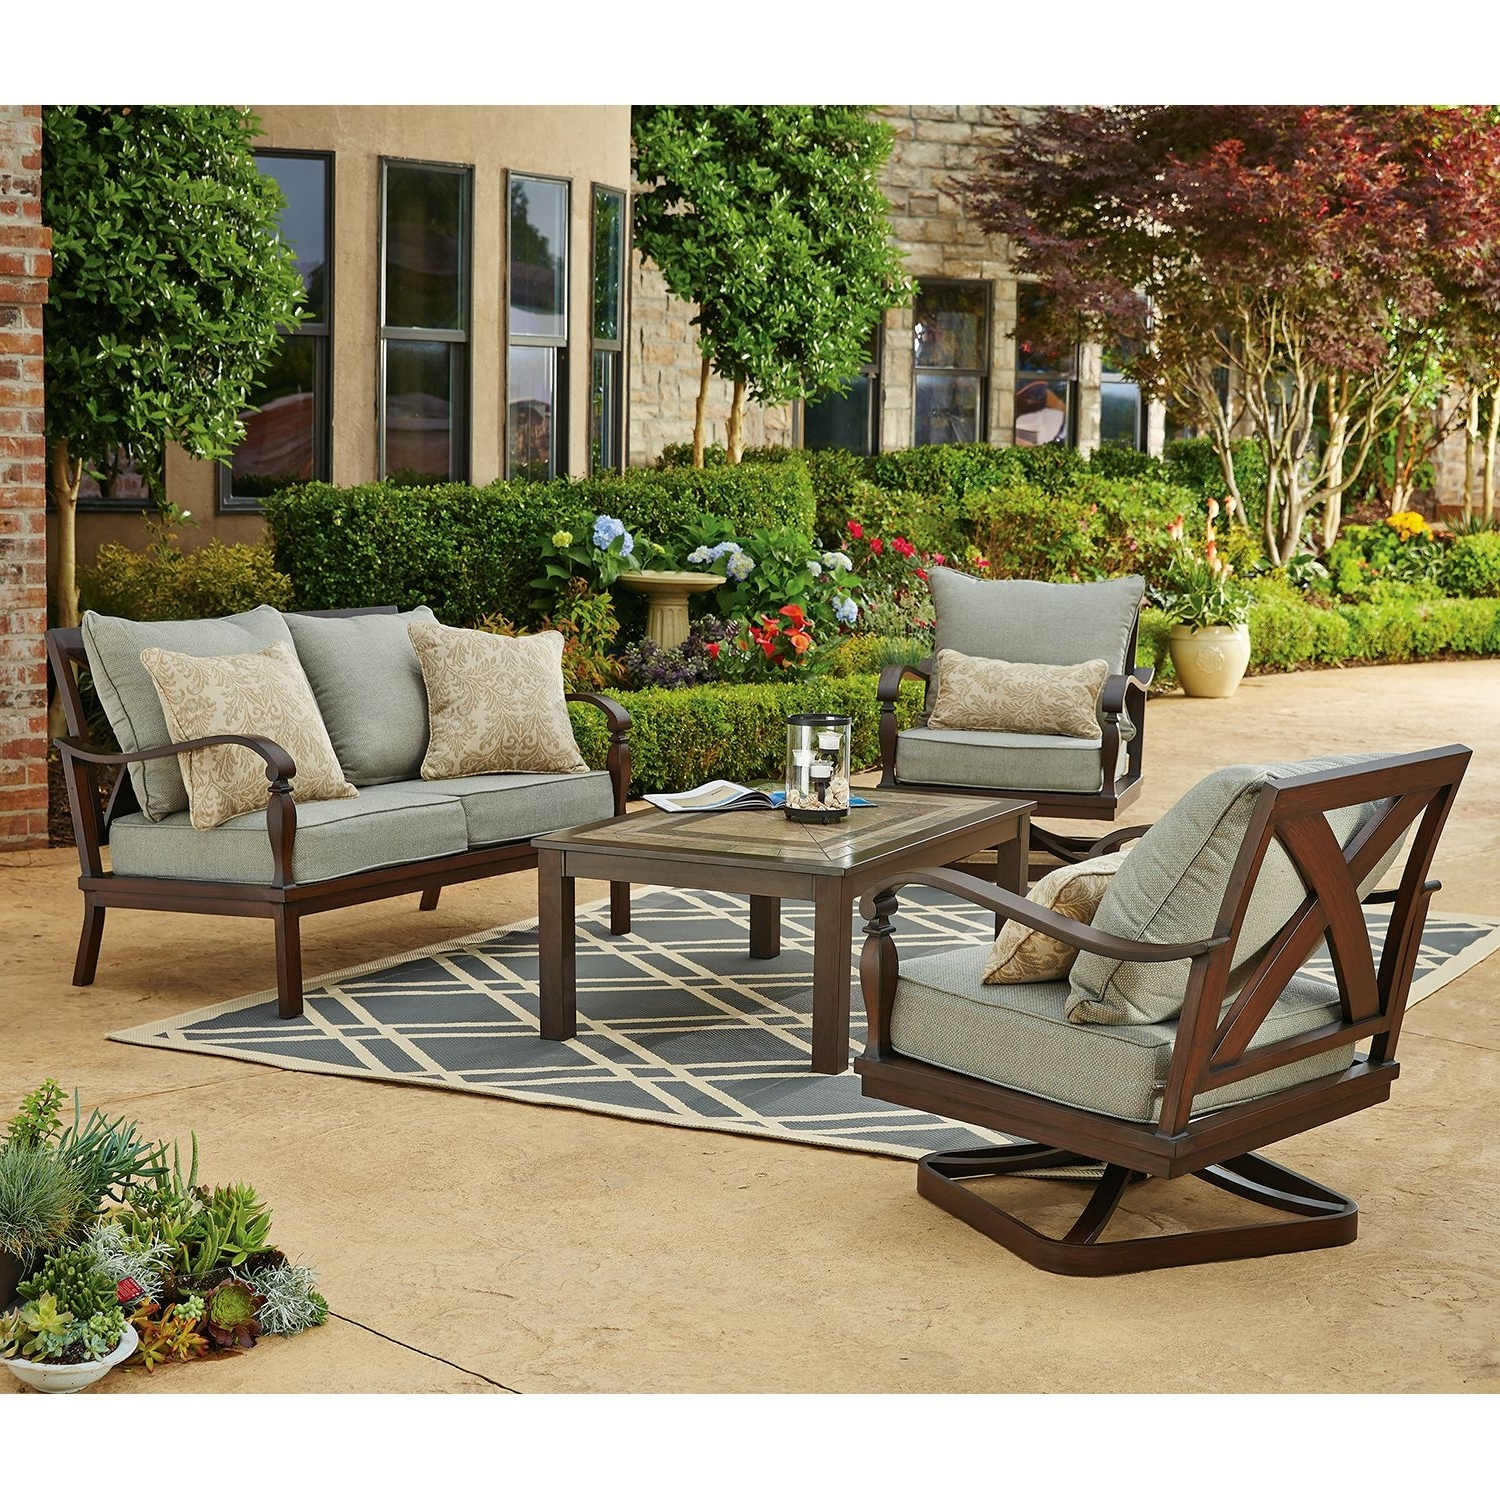 Preferred Patio Conversation Sets Without Cushions Pertaining To Furniture: Cozy Wrought Iron Patio Chairs With Cushions And Gray (View 11 of 15)